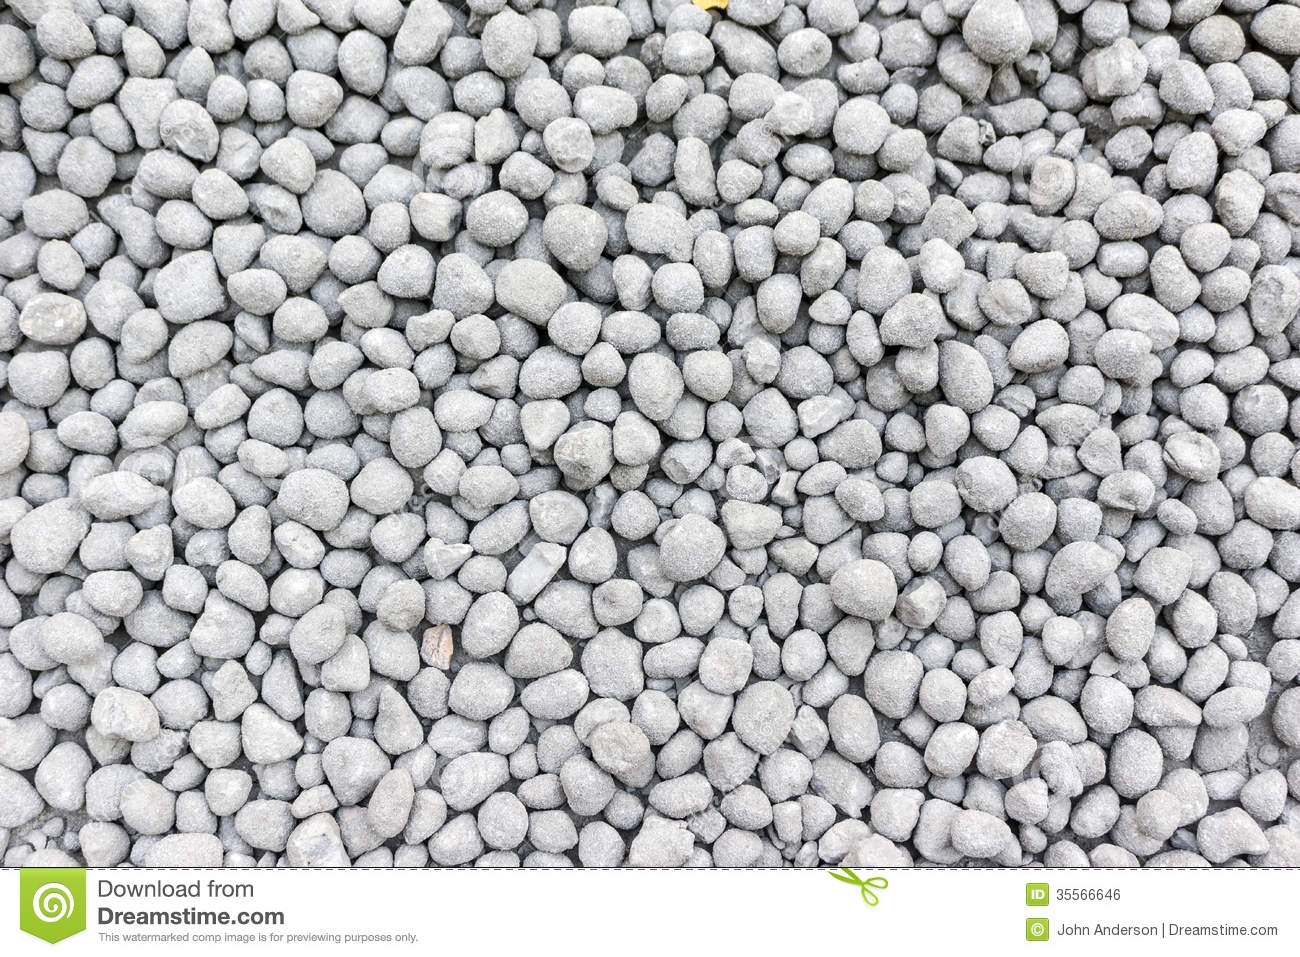 Https Www Dreamstime Com Royalty Free Stock Image Small Rocks Gravel Around Tree Image35566646